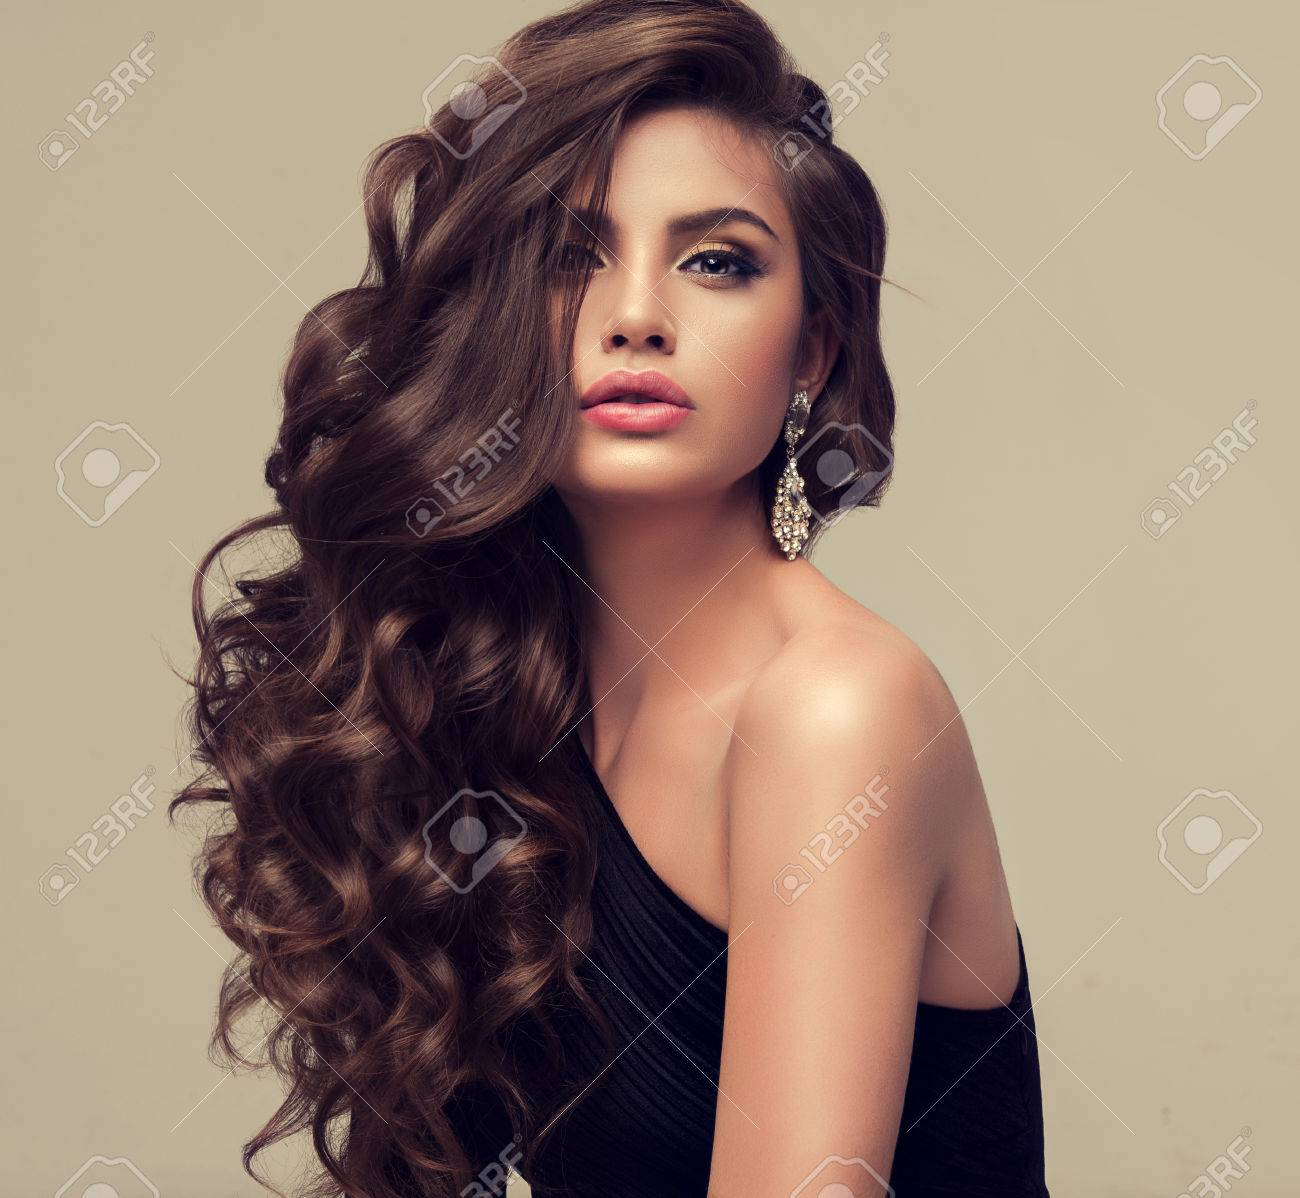 young woman brunette with voluminous shiny and wavy hair